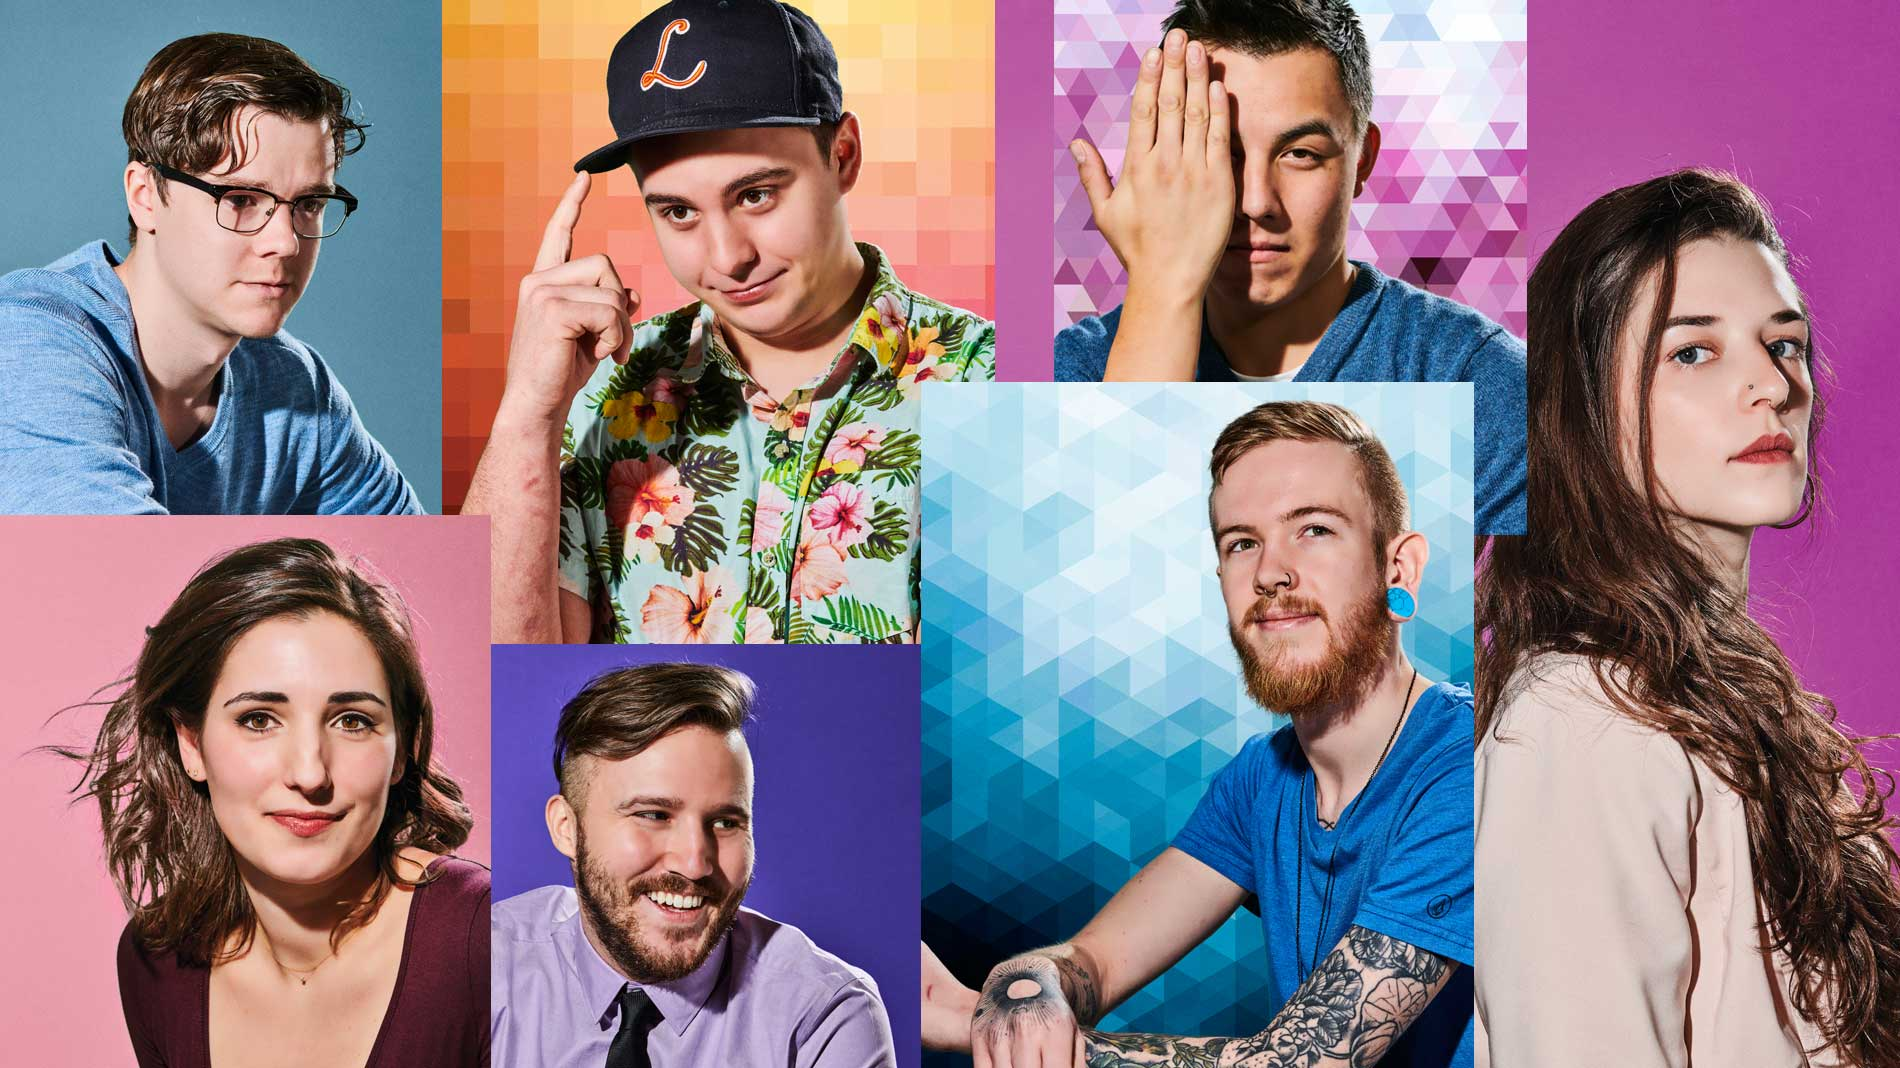 a photo collage of seven young people